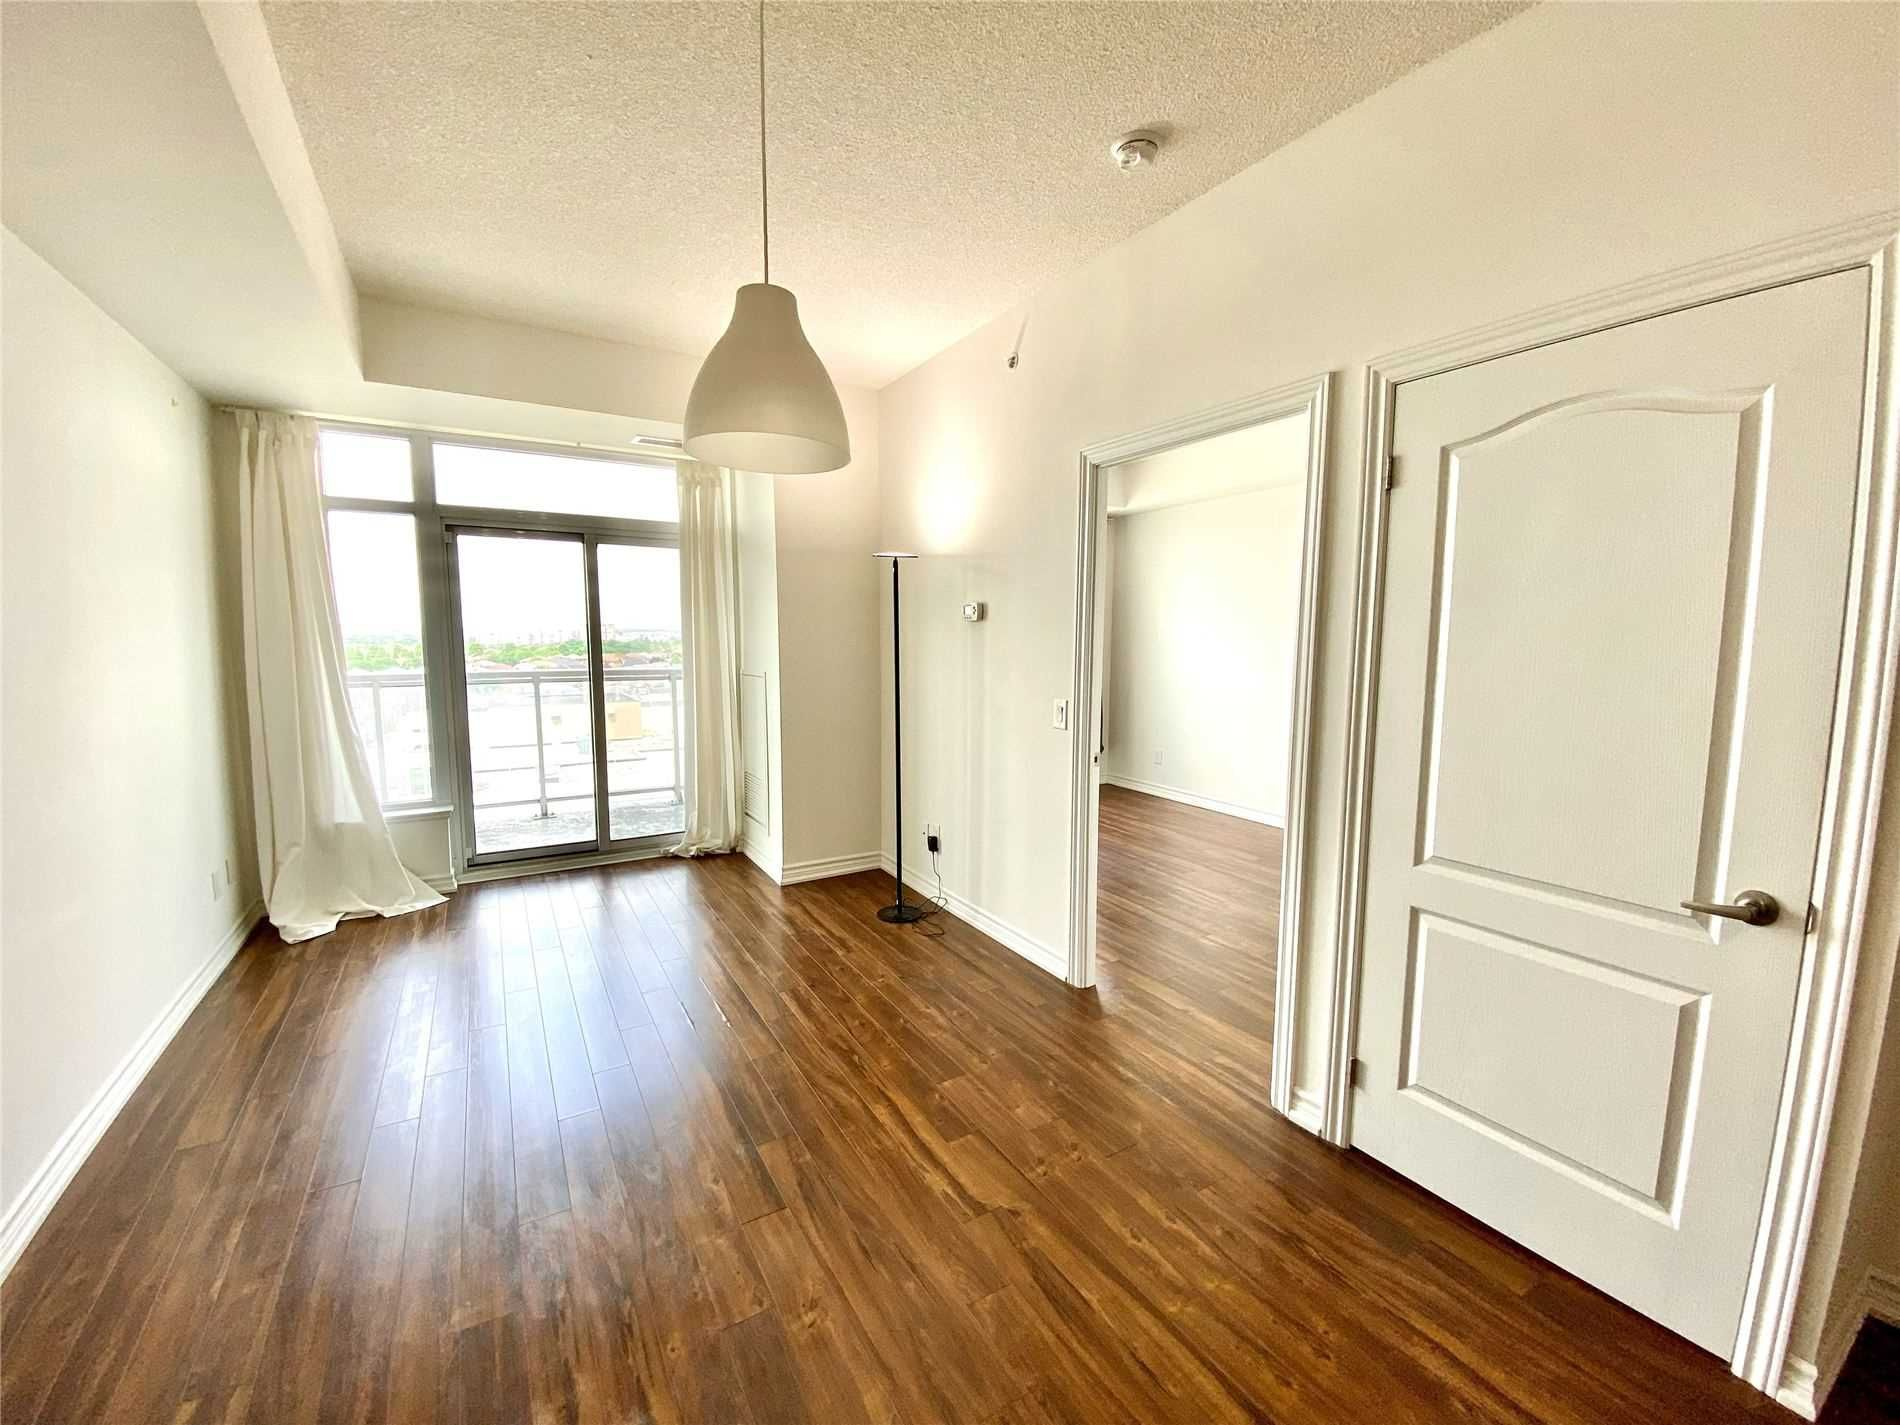 8323 Kennedy Rd, unit 1025 for sale in Toronto - image #2